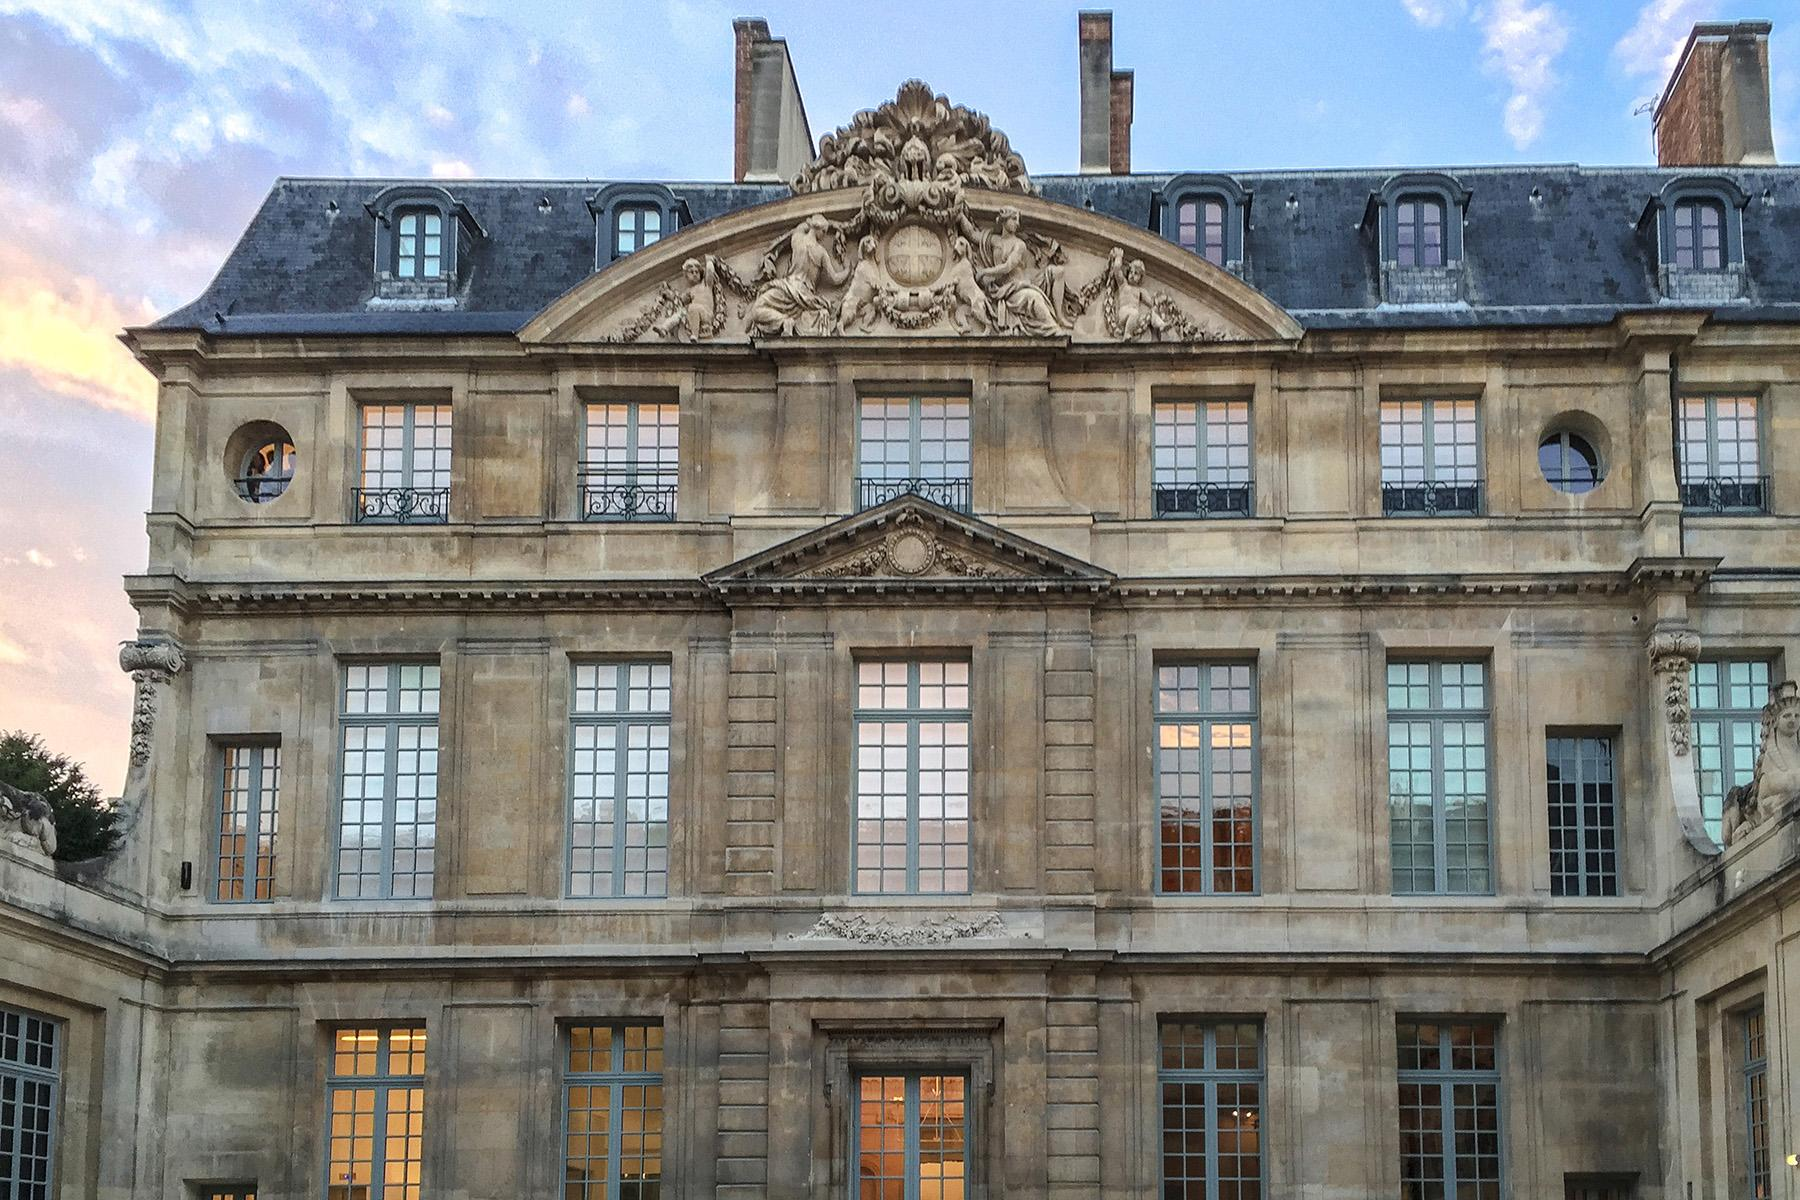 8 Picasso Museum the 25 ultimate things to do in paris The 25 Ultimate Things to Do in Paris 8 Picasso Museum